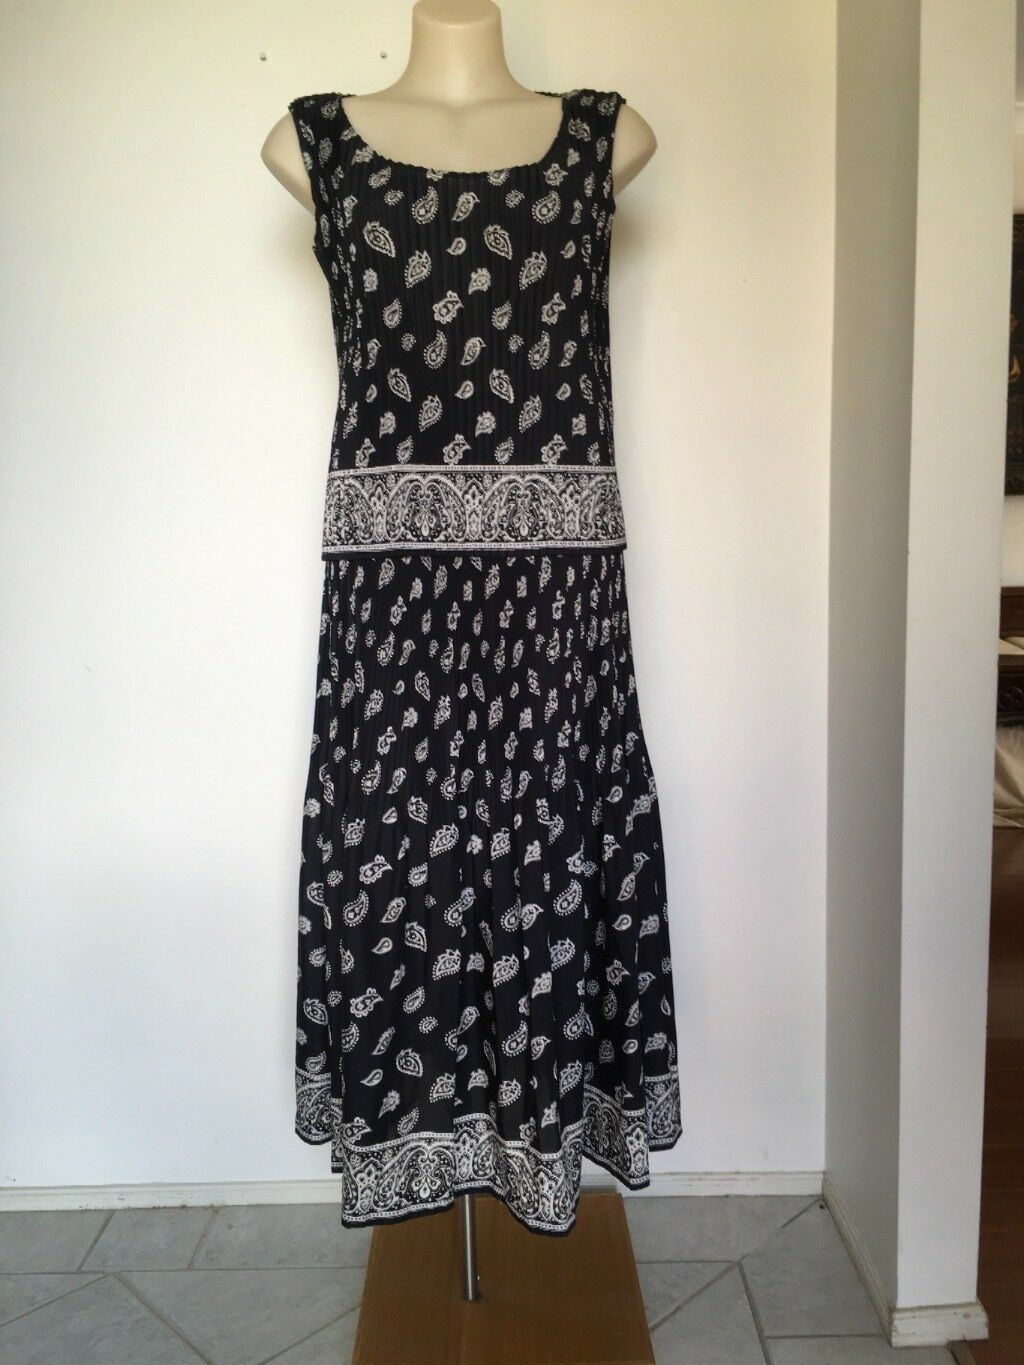 6e8f95c46f6 Issey Miyake Top Skirt Dress Navy paisley design M L Size Cream ...